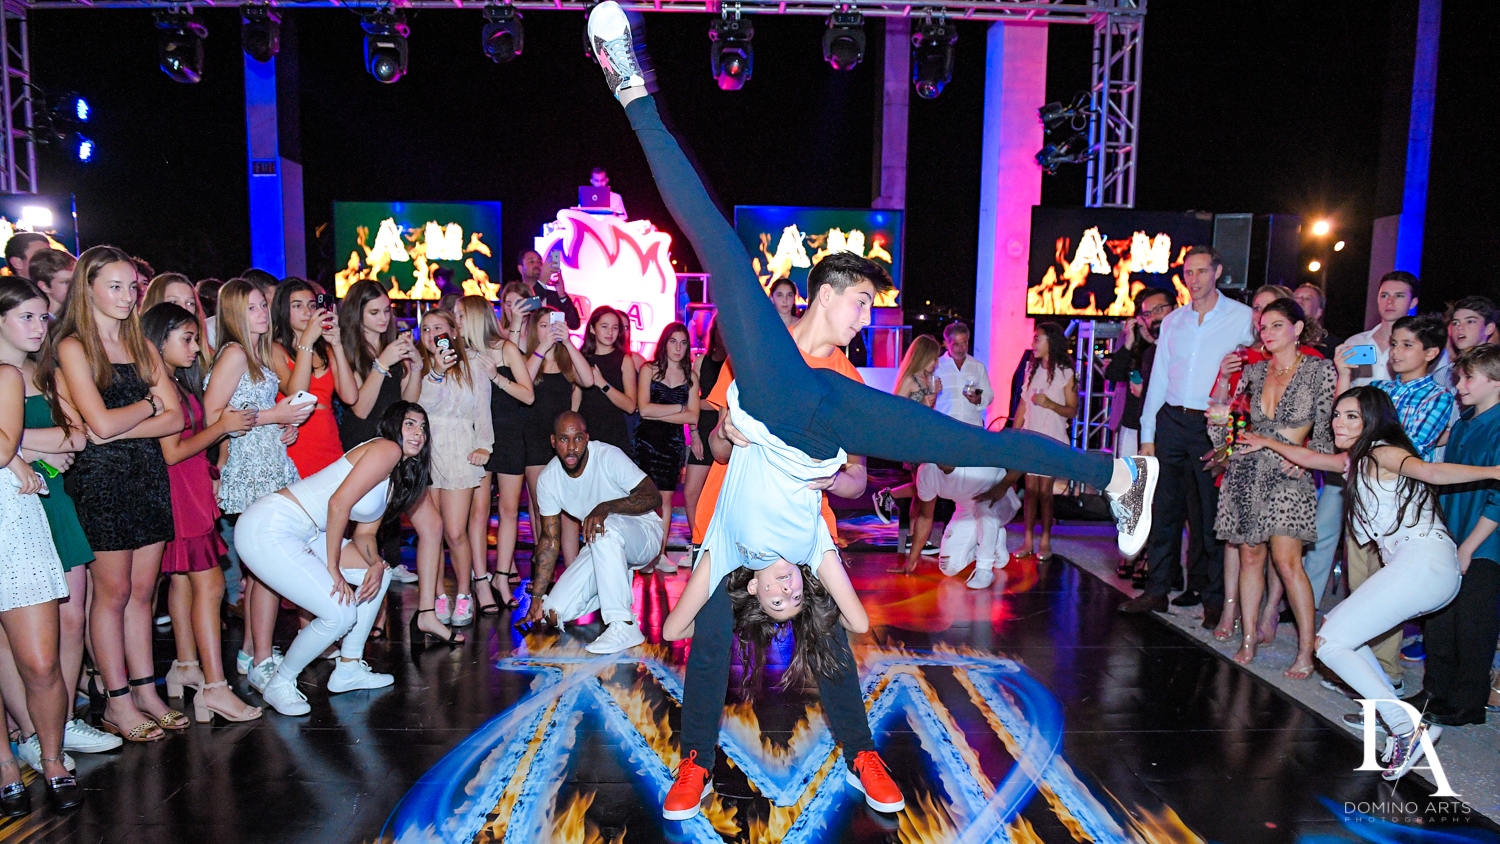 choreographed siblings dance at Fire & Ice B'Nai Mitzvah at Perez Art Museum Miami by Domino Arts Photography